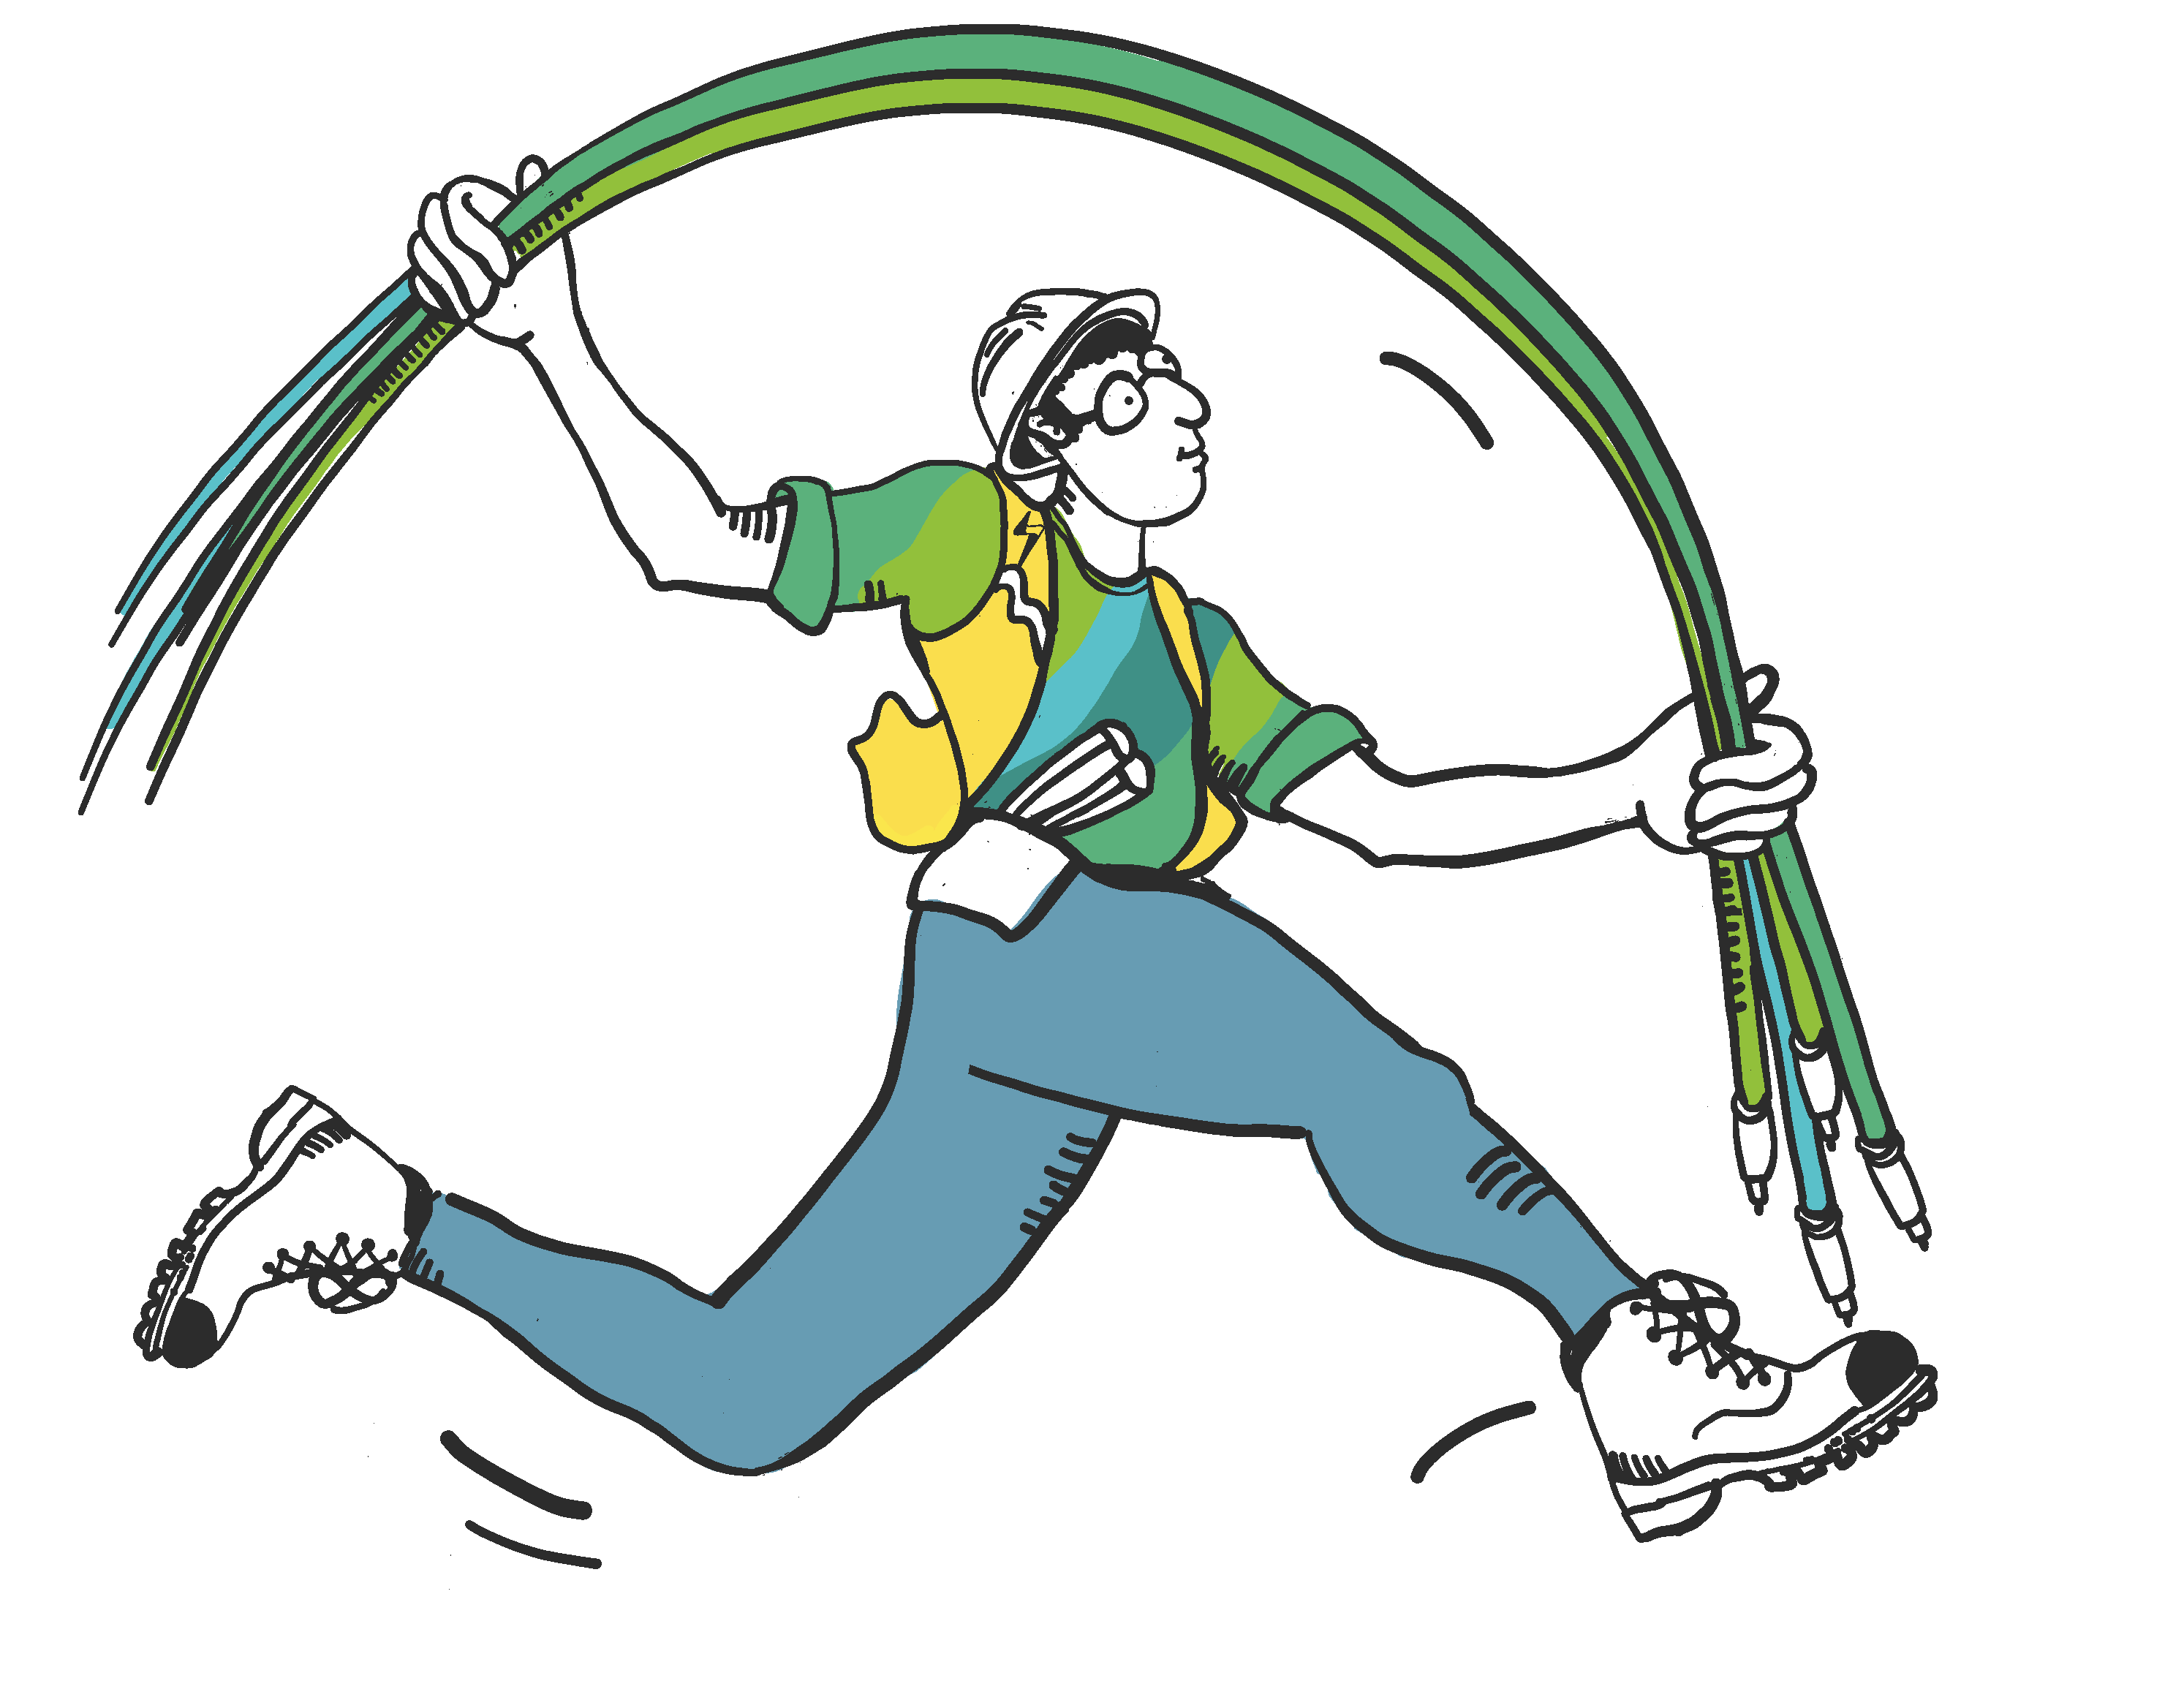 Vector drawing of man with cables jumping